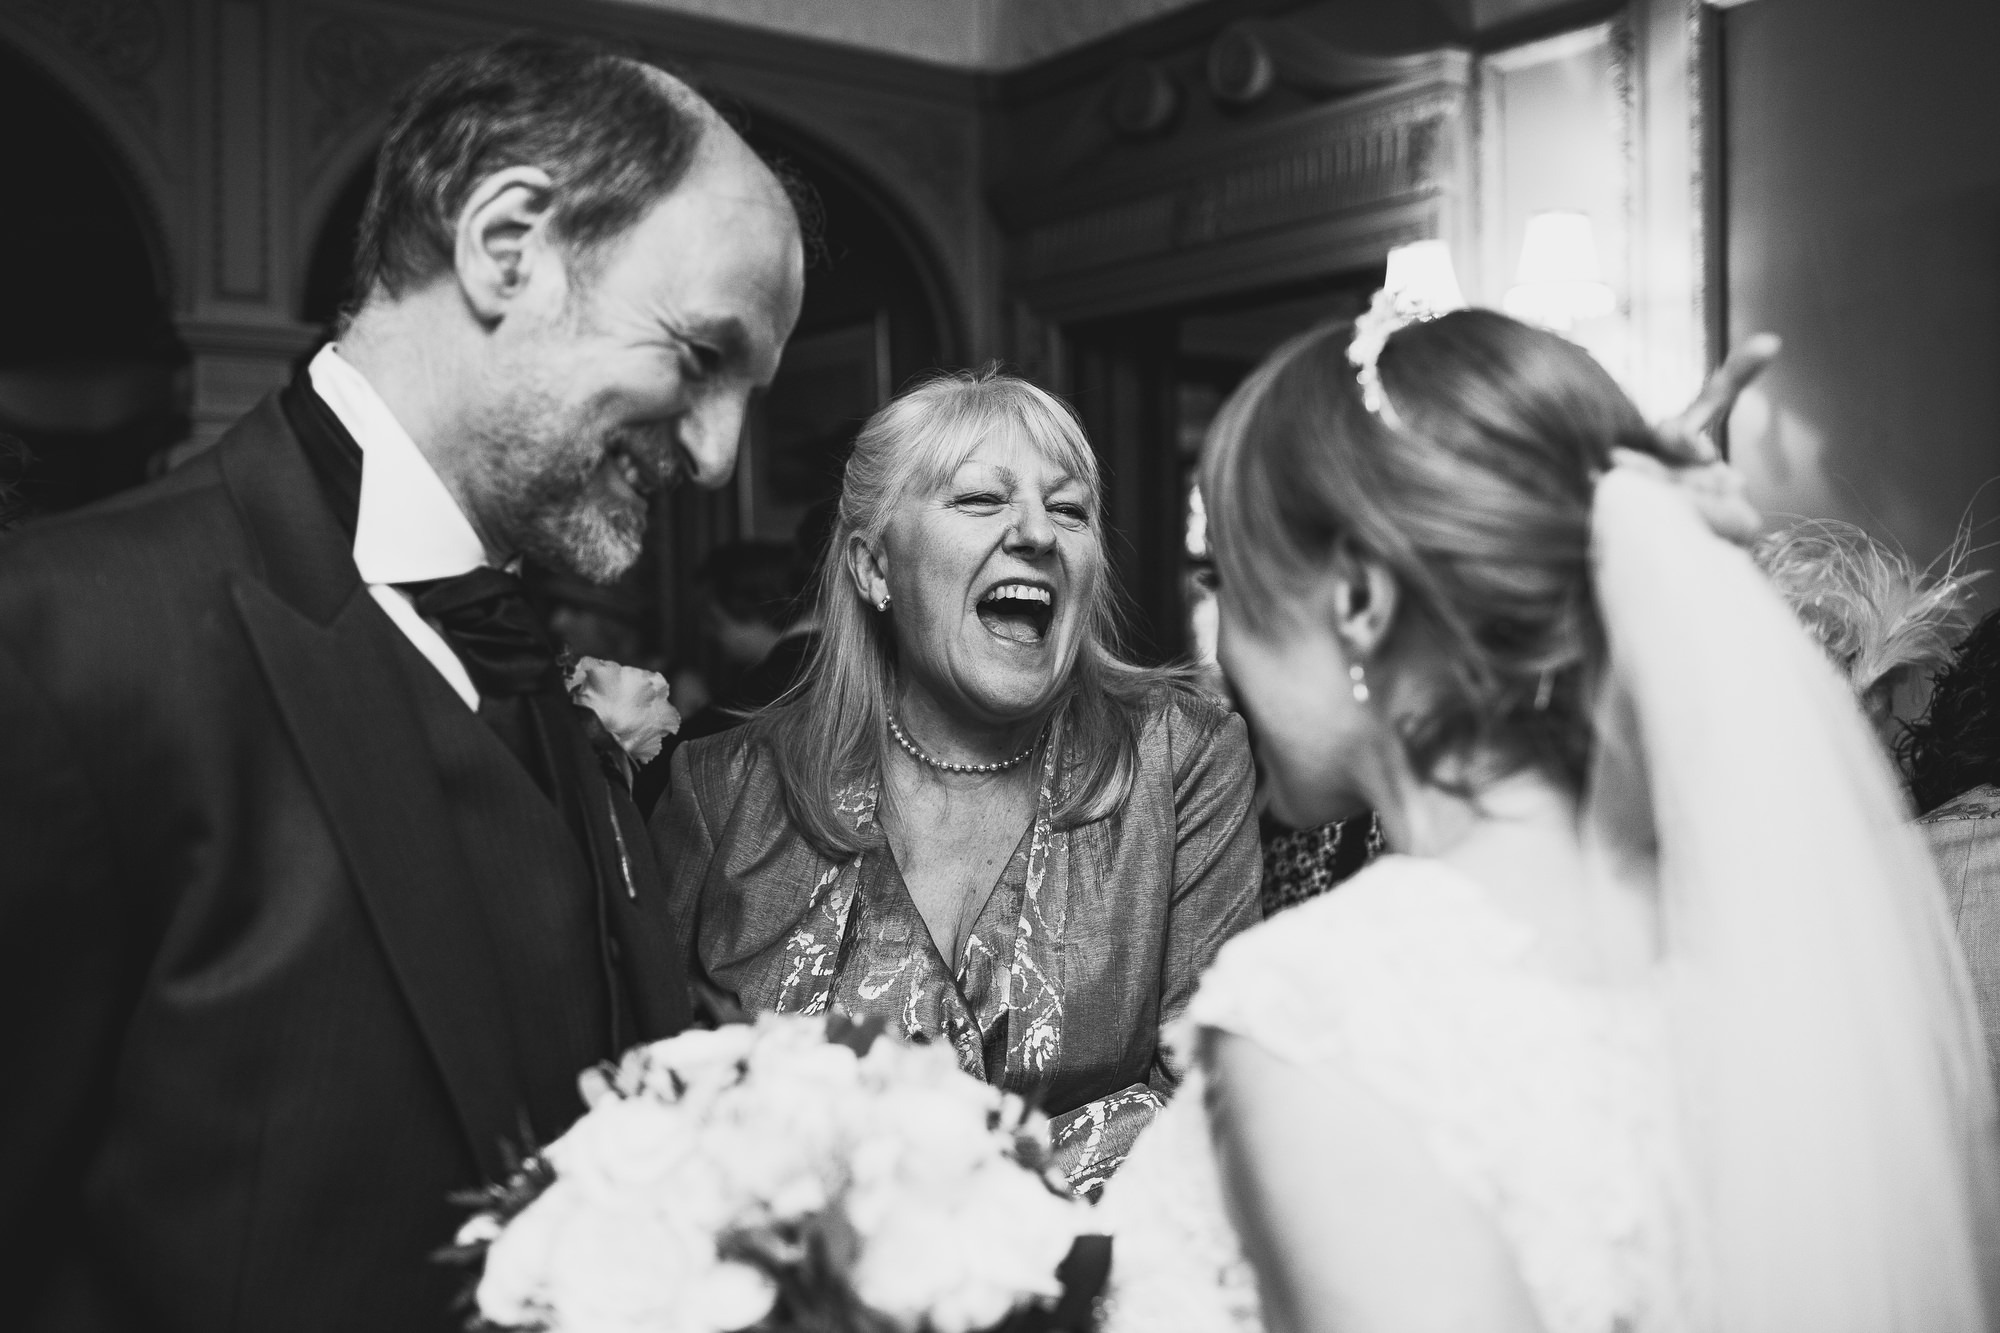 thornton-manor-wedding-photography-sarah-rich-30